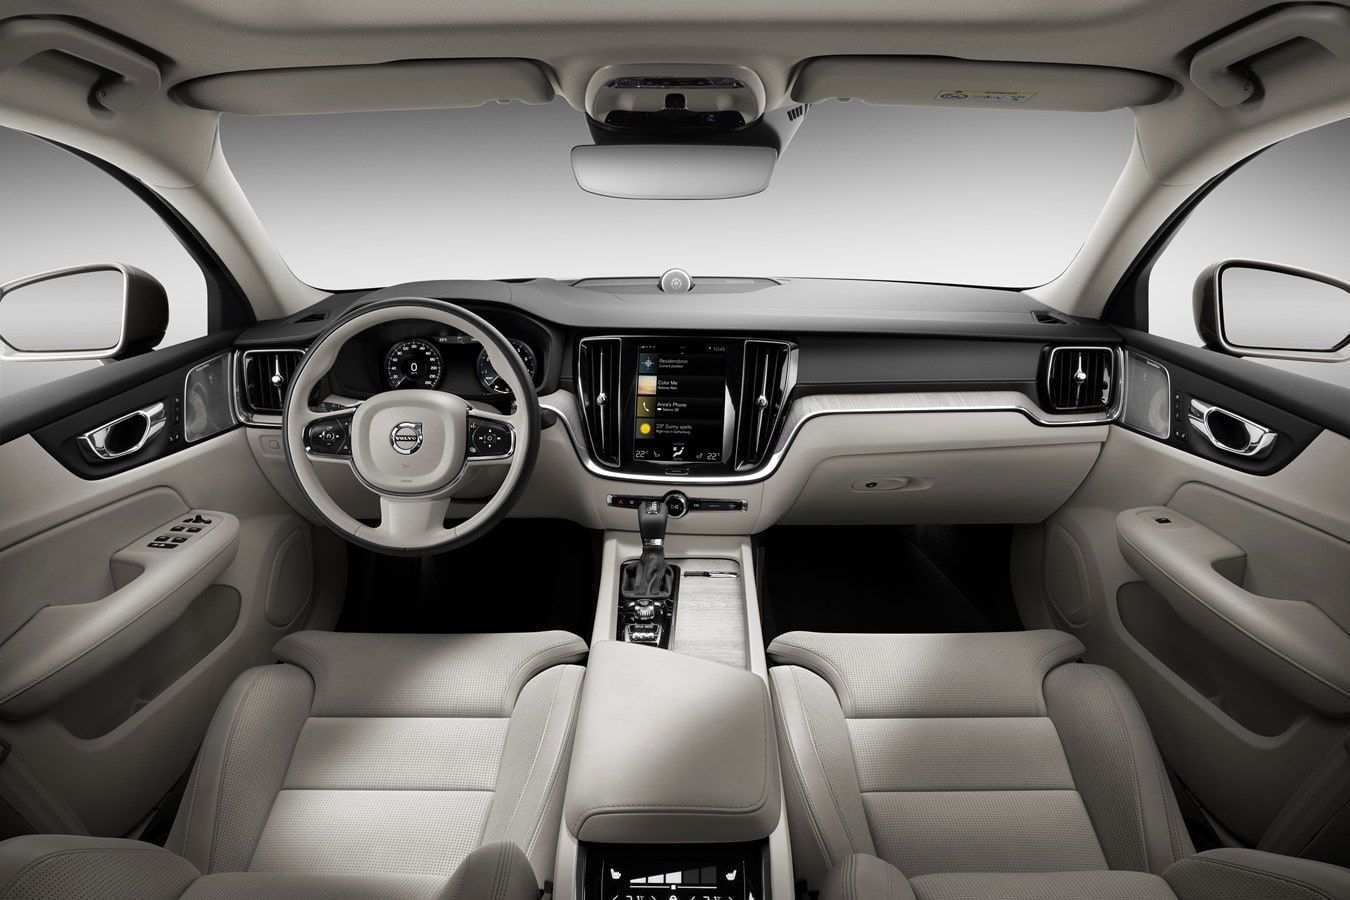 96 Gallery of Volvo S60 2019 Interior Redesign and Concept with Volvo S60 2019 Interior